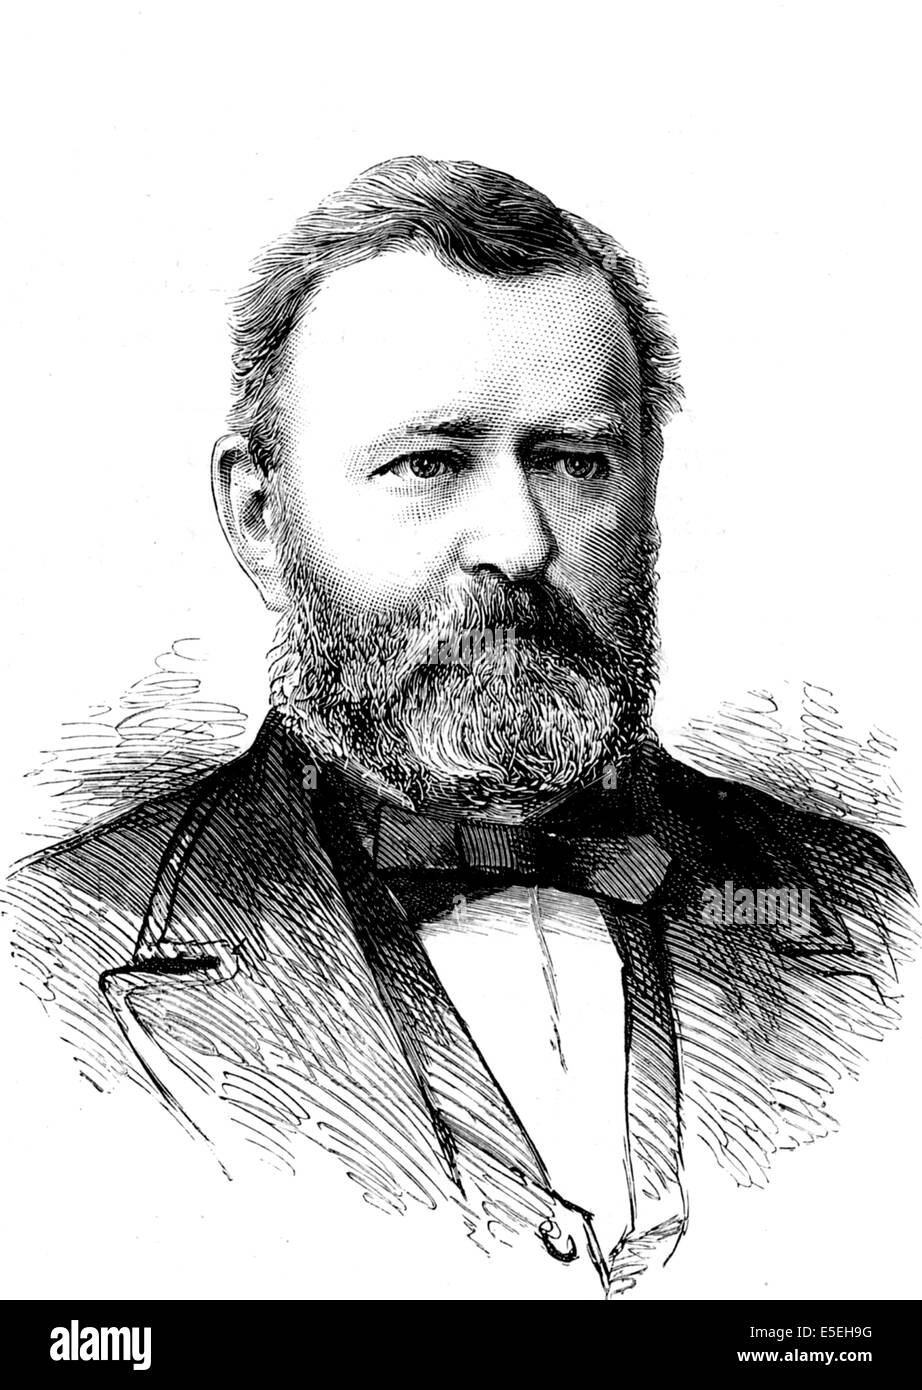 Ulysses S. Grant, 18th President of the United States, American general, historical print, 1890 - Stock Image